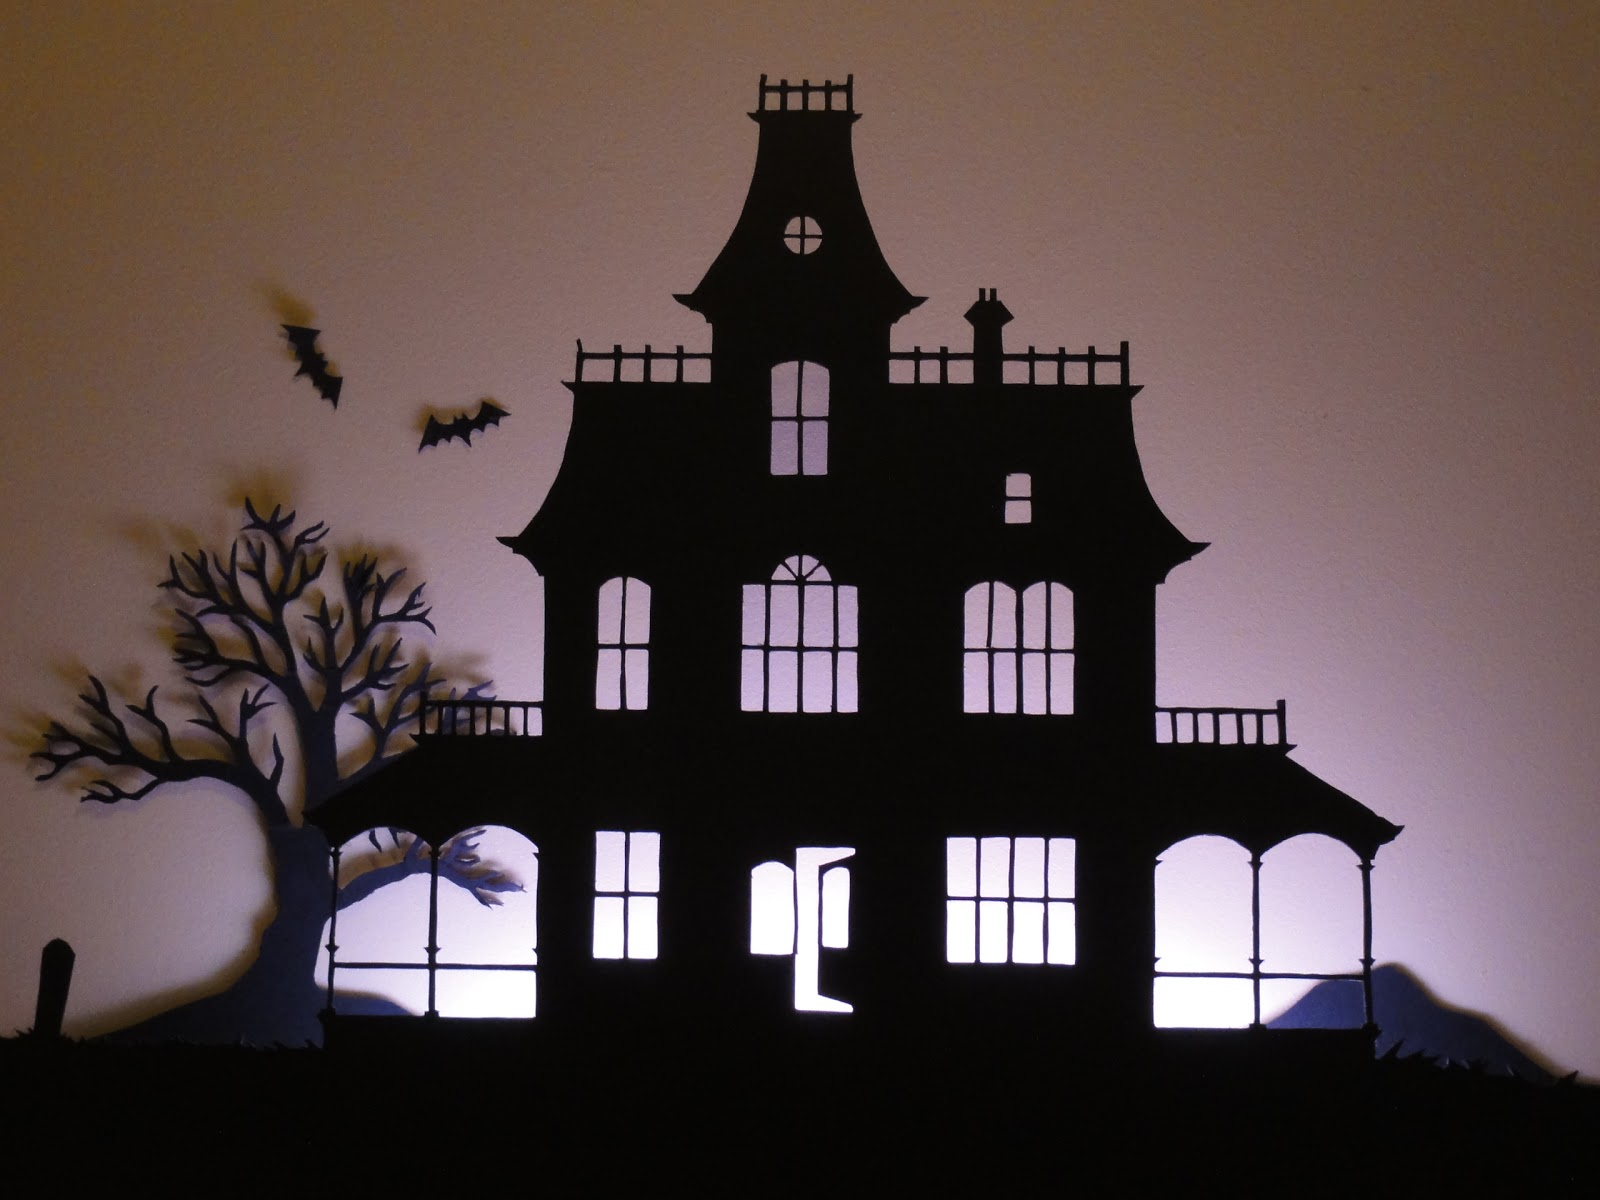 birshykat haunted house silhouette. Black Bedroom Furniture Sets. Home Design Ideas